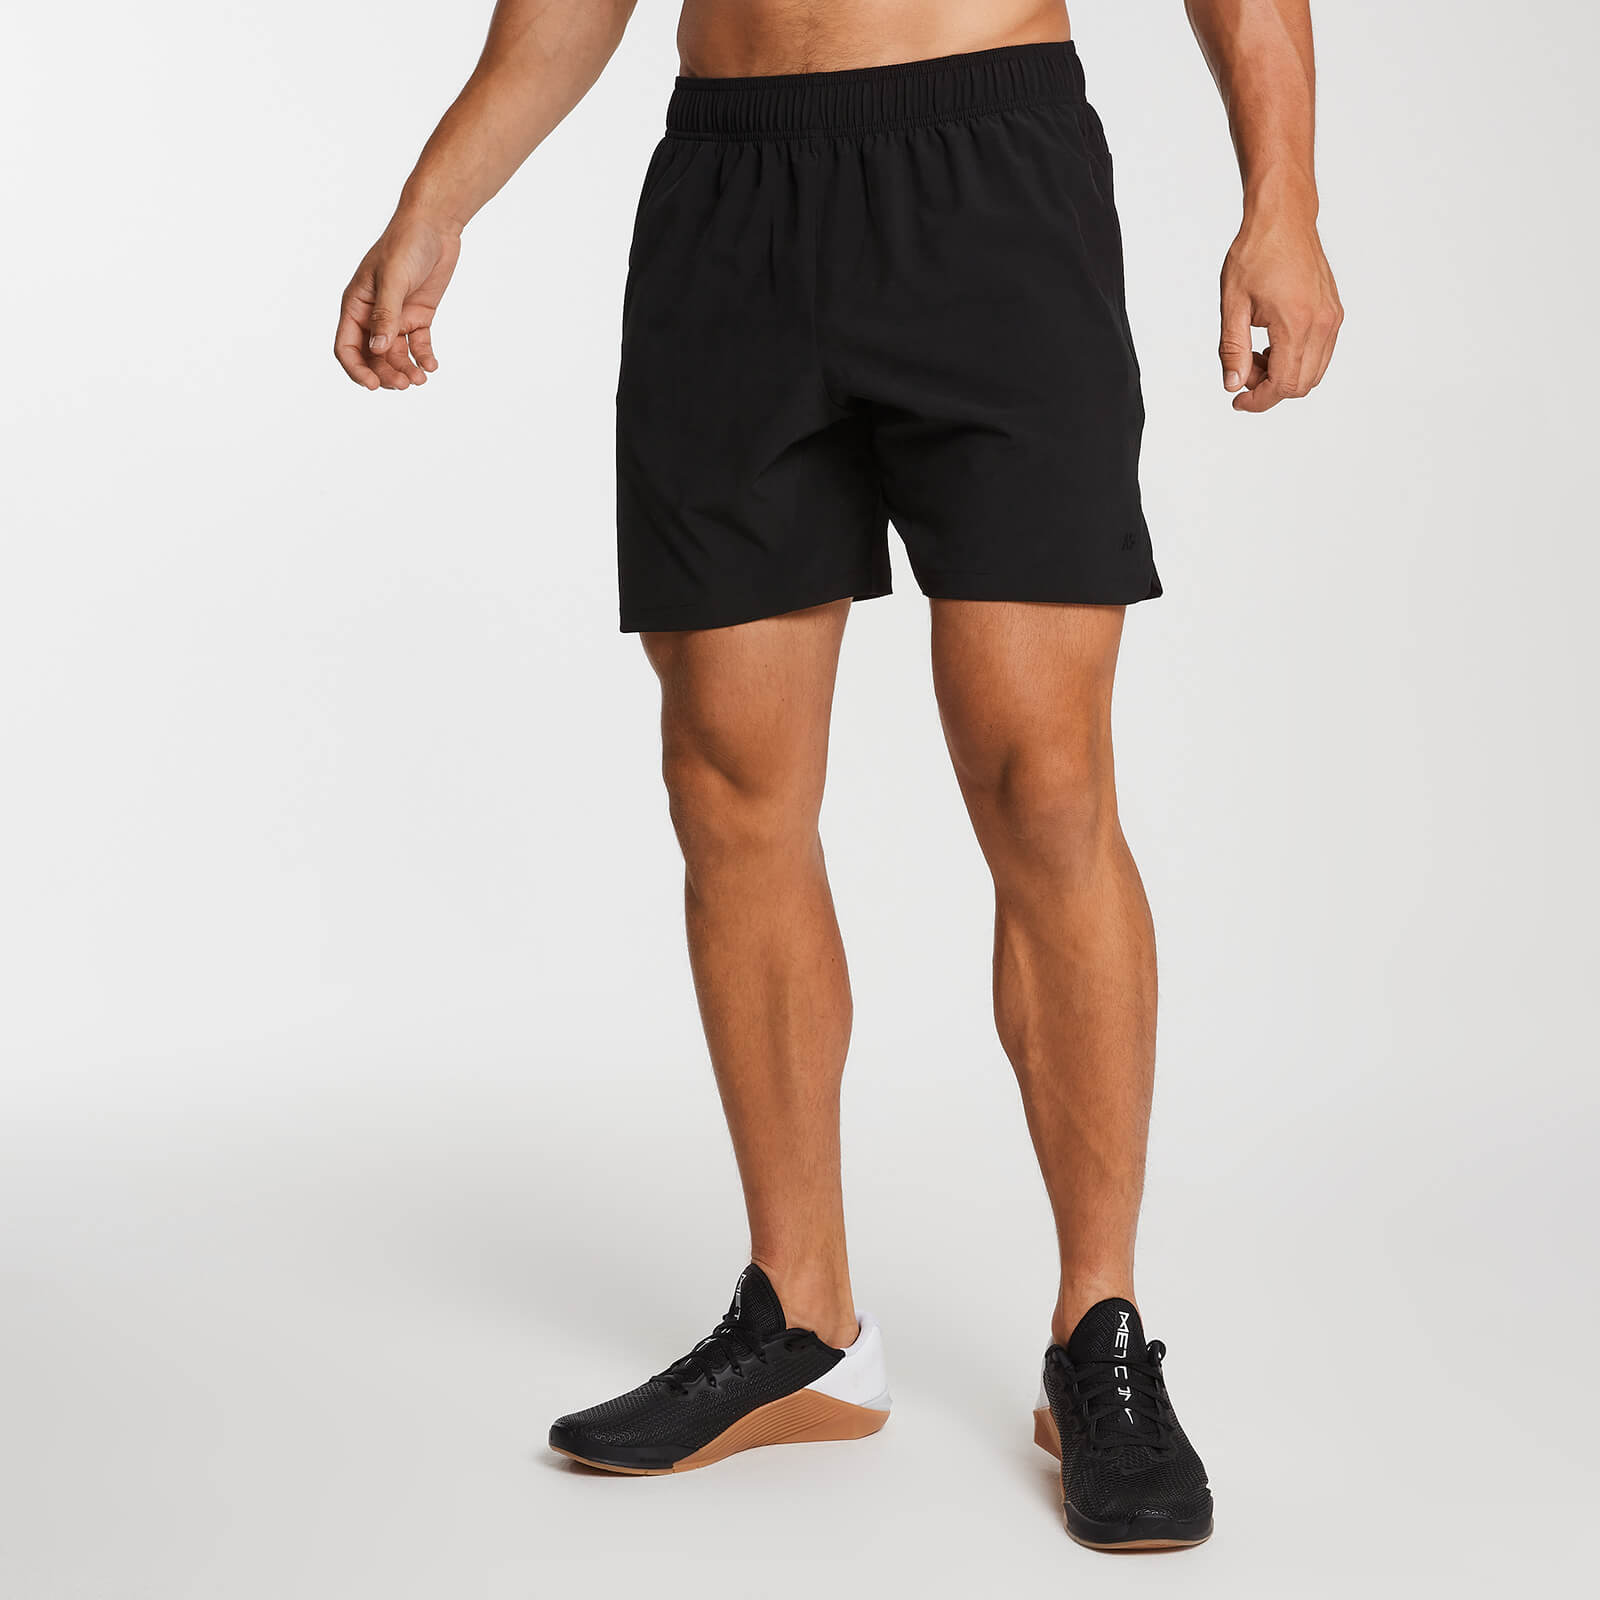 MP Herren Essentials Training Shorts - Schwarz - XL von MP